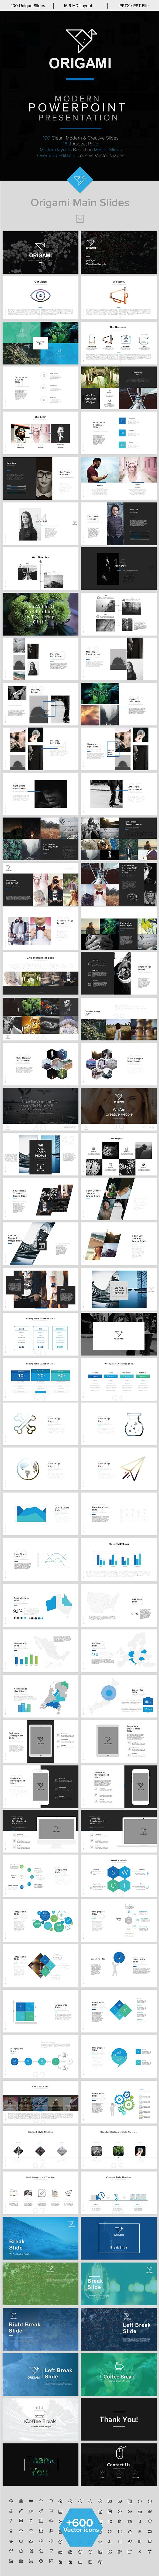 1763 best powerpoint template images on pinterest font logo a origami minimal powerpoint template toneelgroepblik Images